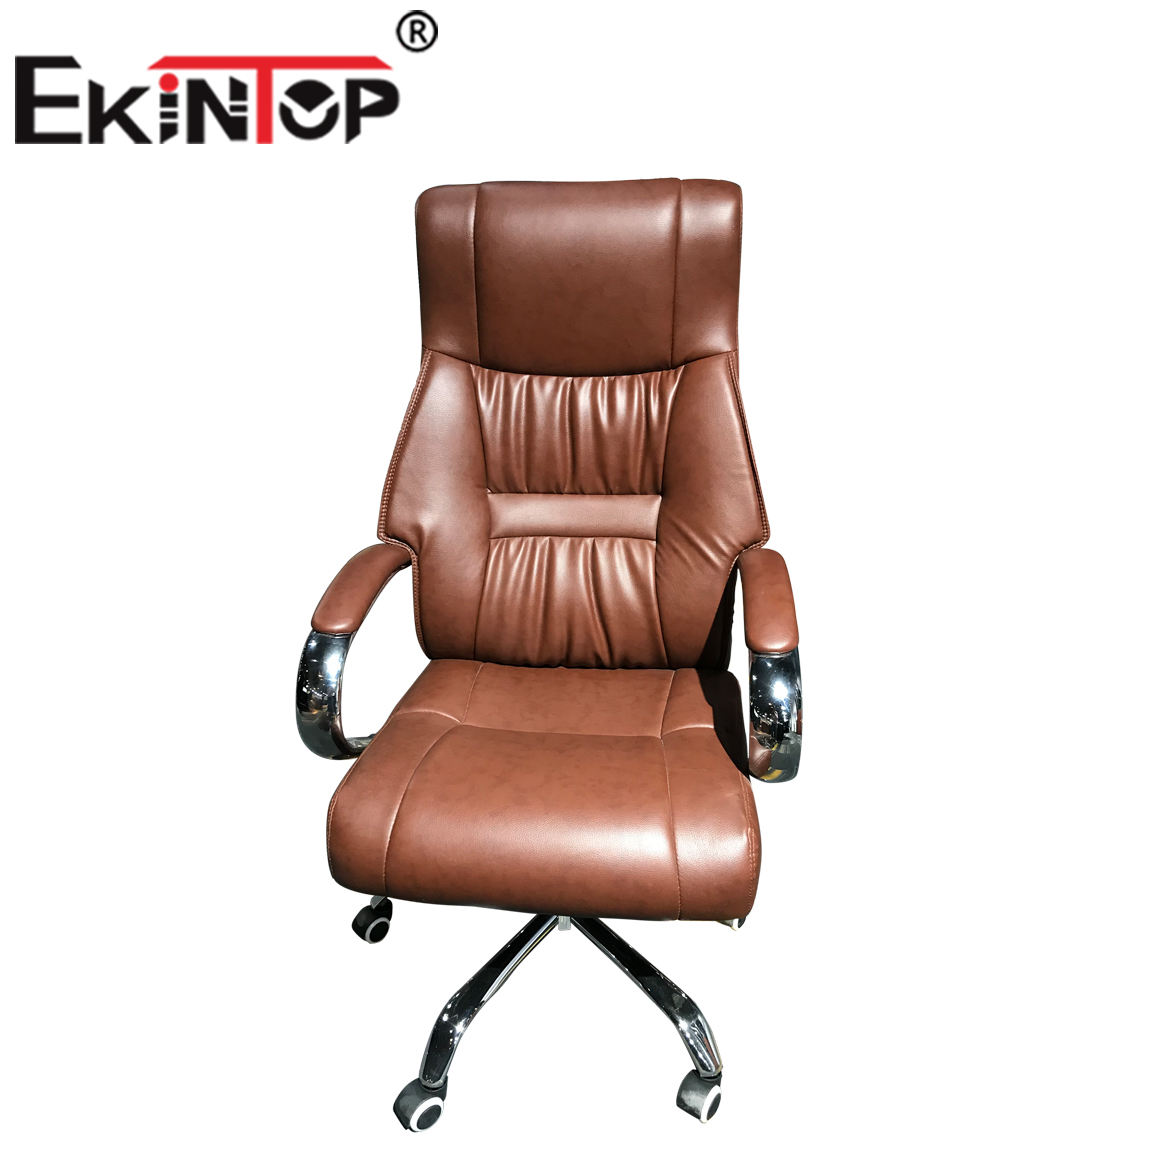 American style office furniture solid wood leather comfortable executive chair